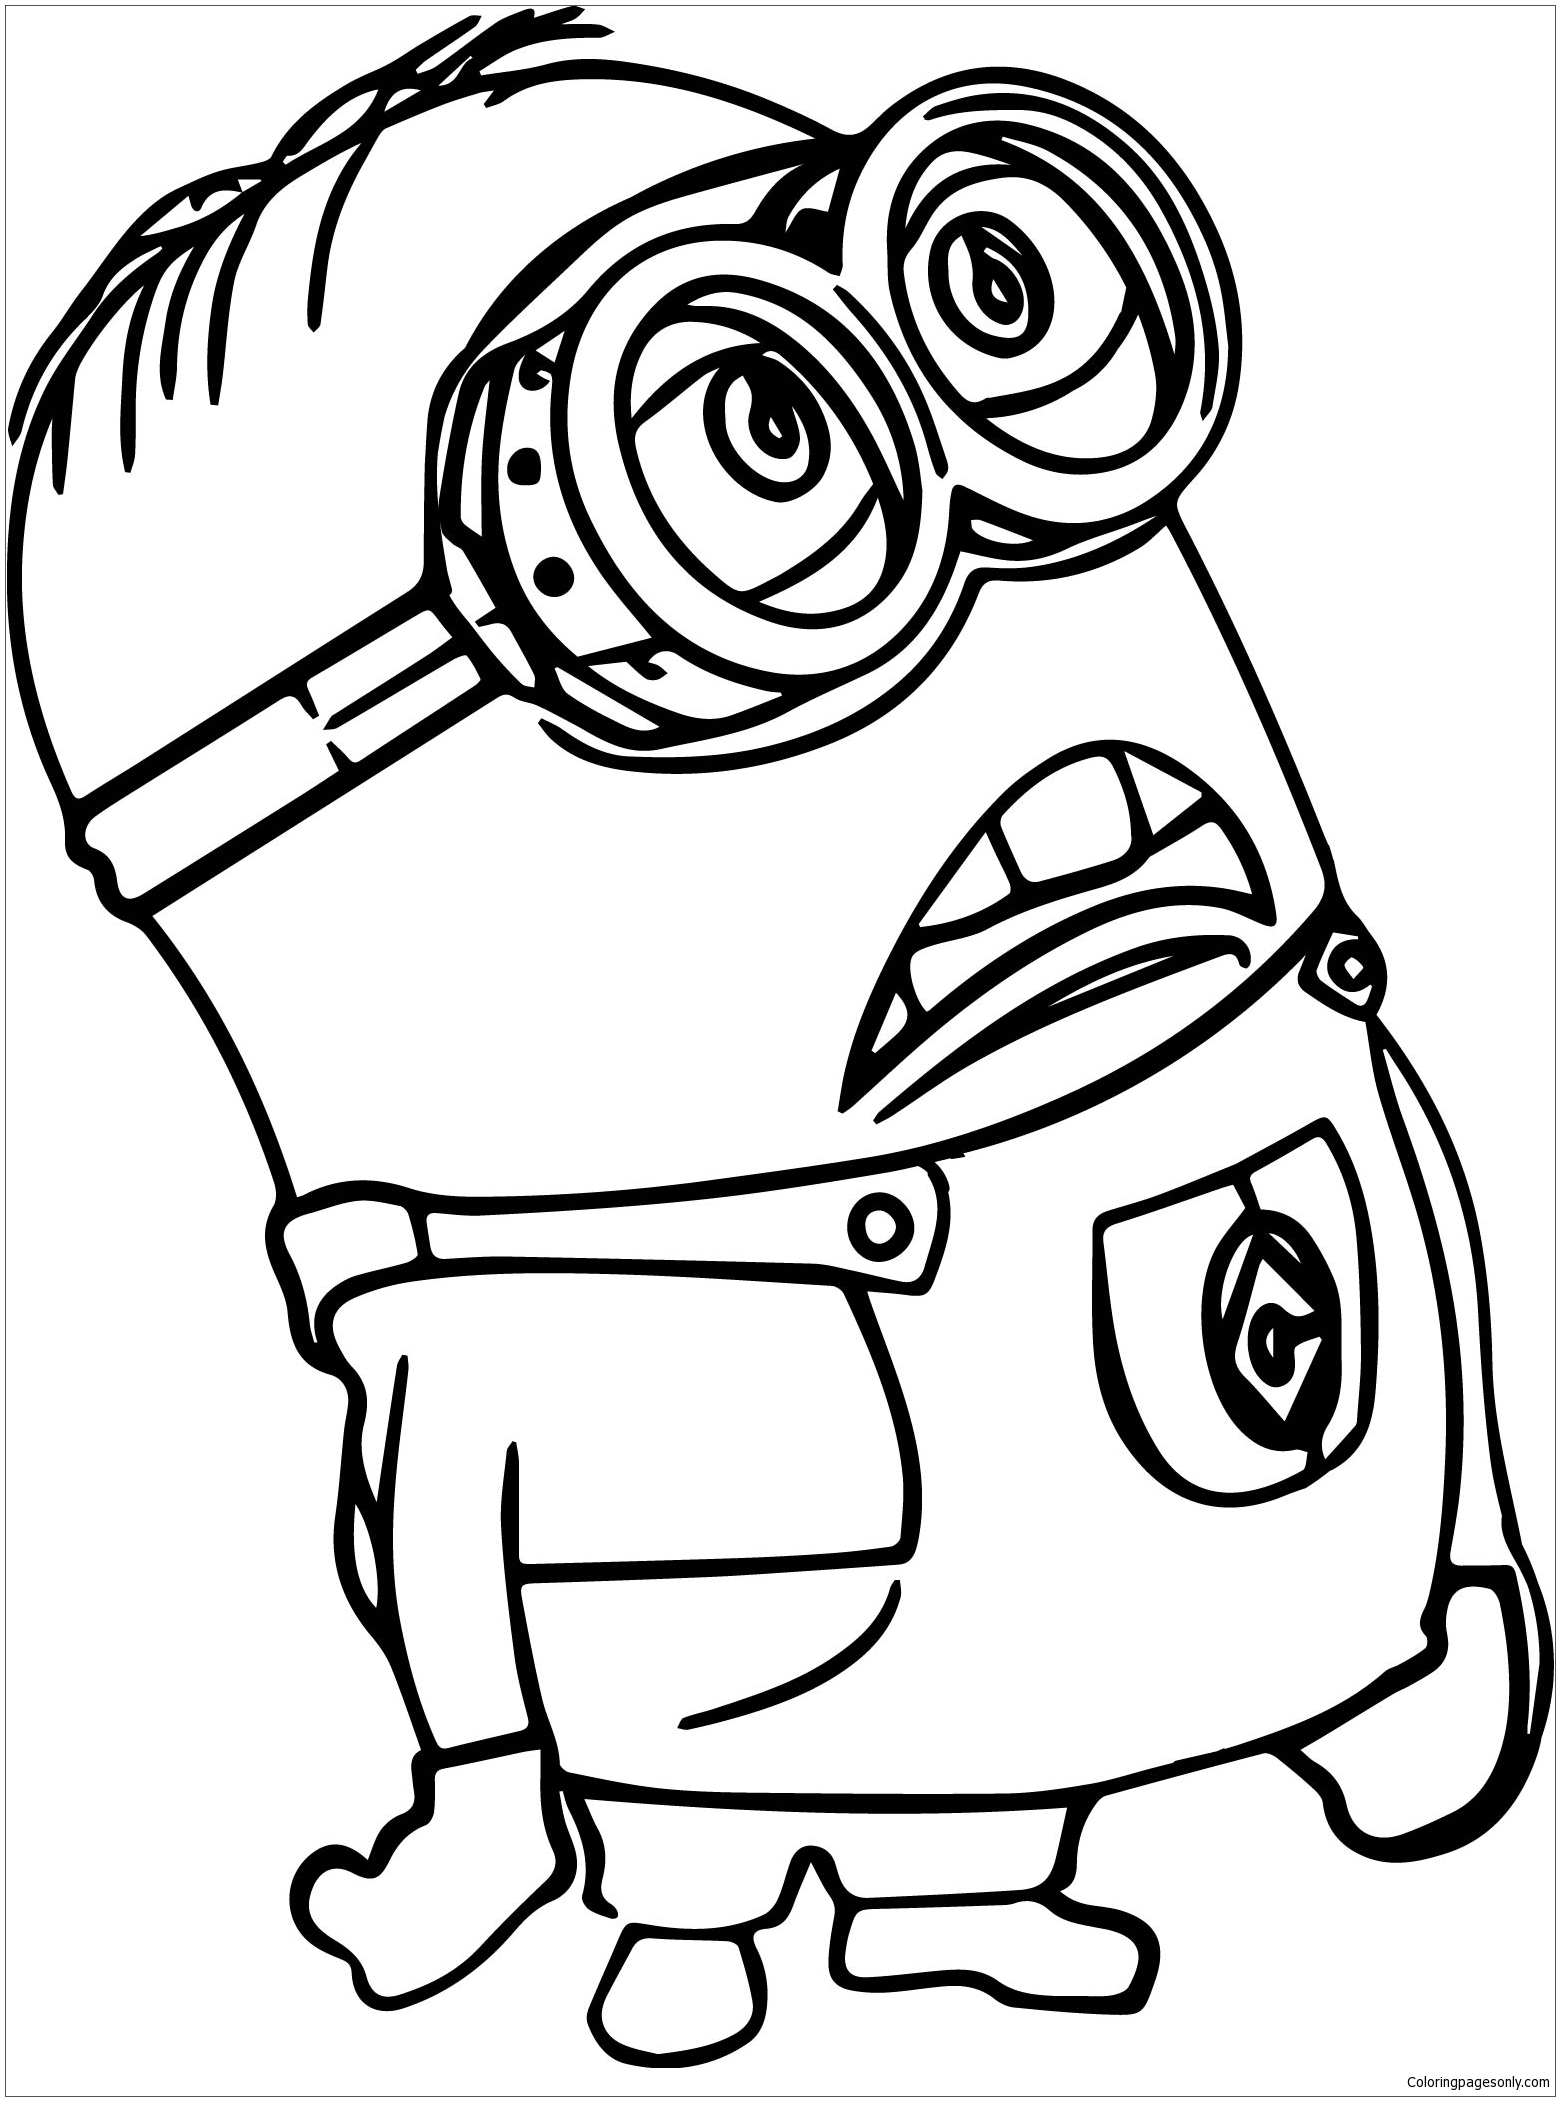 Minion Of Despicable Me Coloring Page Free Coloring